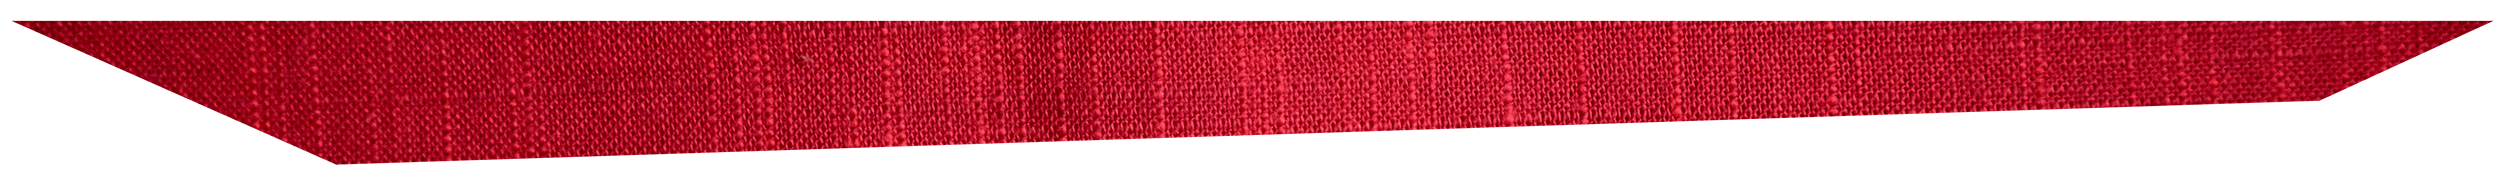 Red_Pink_linen_fabric2.png